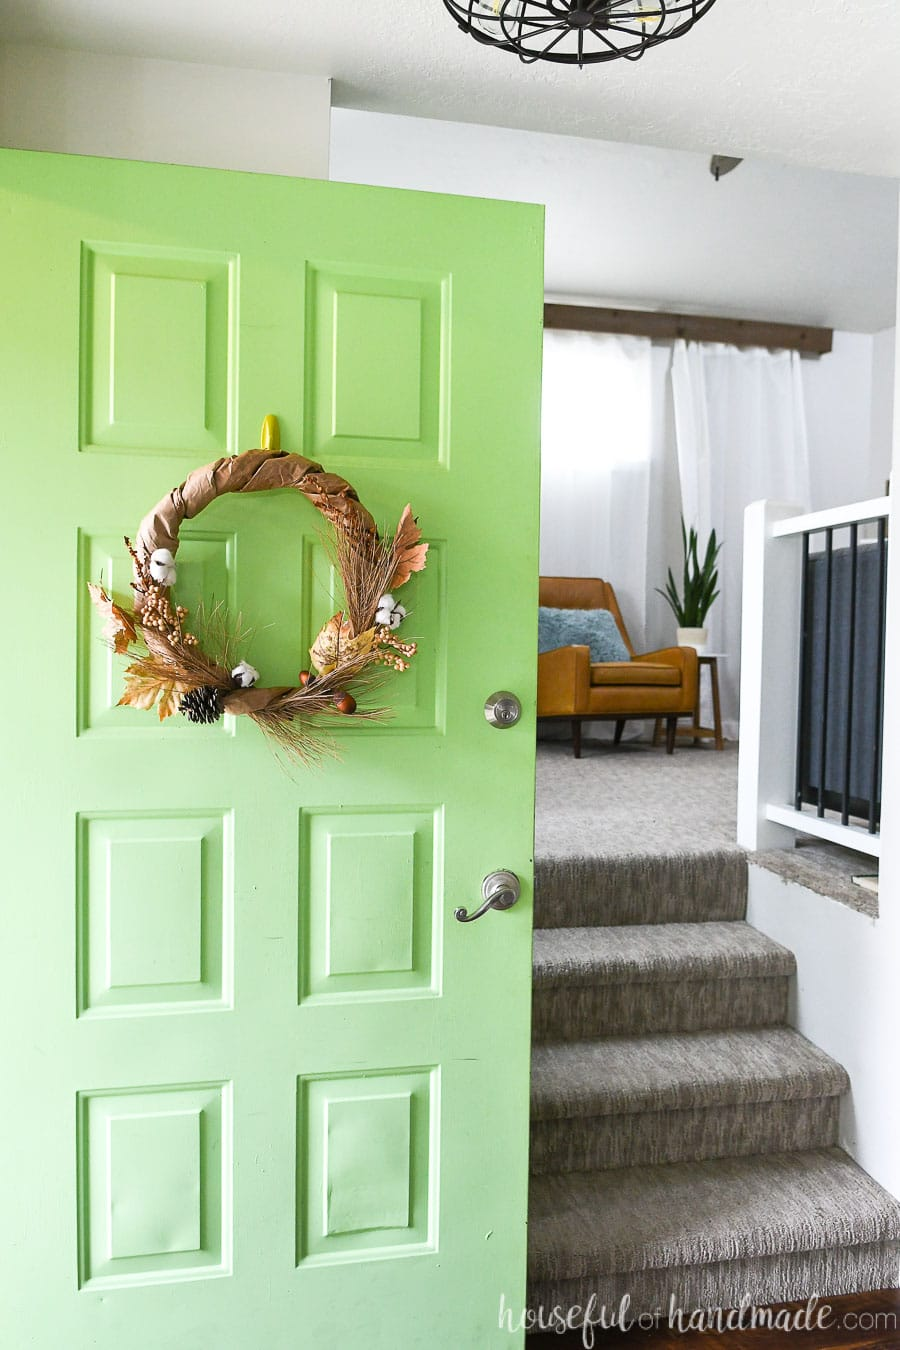 Entryway with green door open and a rustic fall wreath hanging on the door.